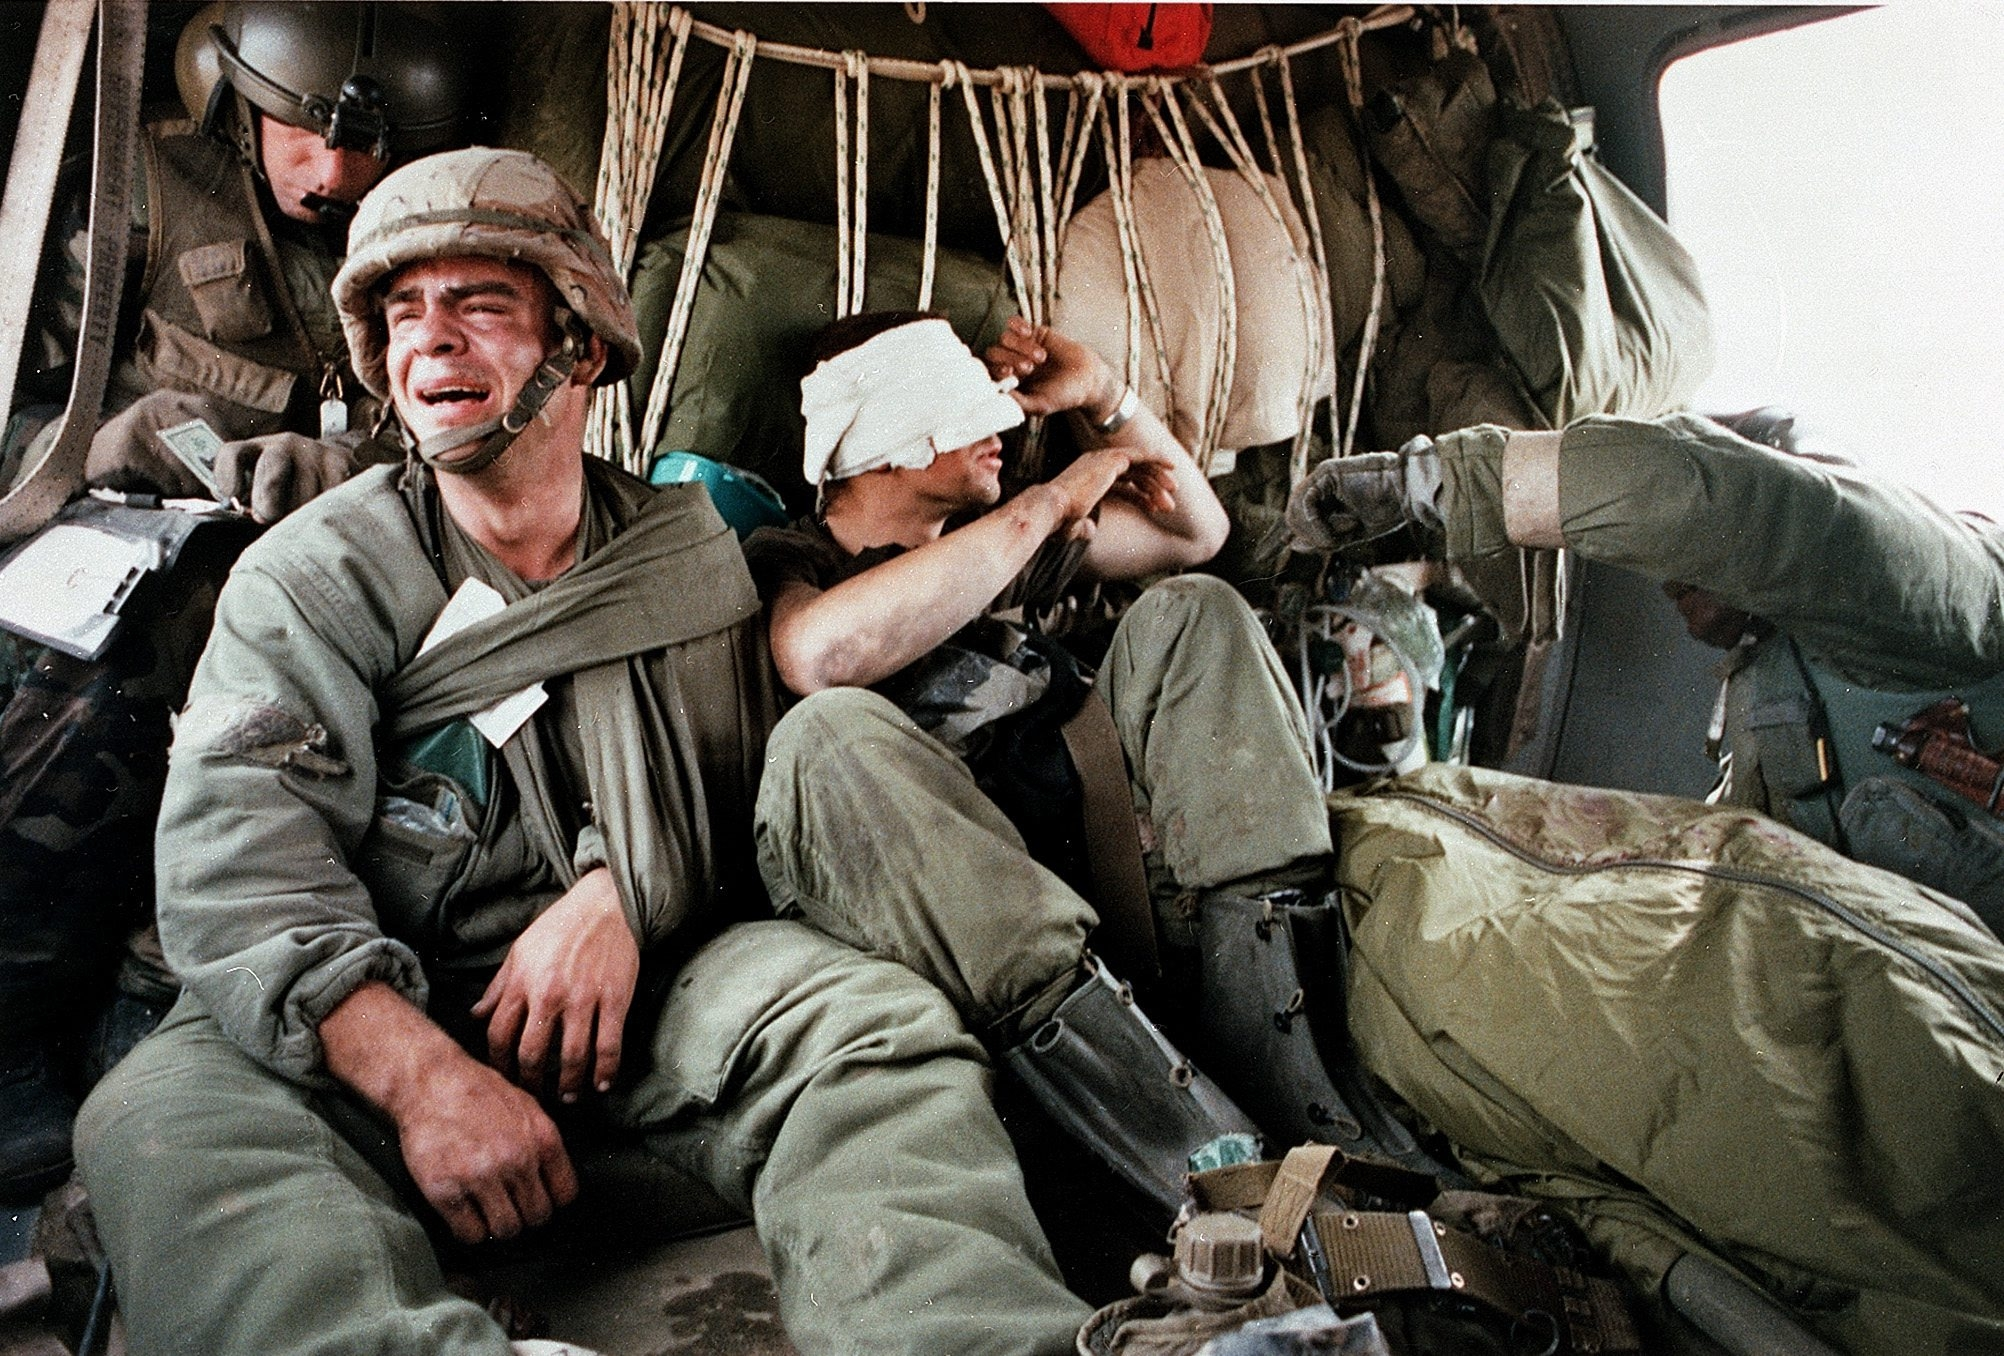 A wounded Sgt. Ken Kozakiewicz sobs as Cpl. Mike Tsangarakis peers into the bodybag holding their comrade, Pvt. Andy Alaniz. (David C. Turnley photo)